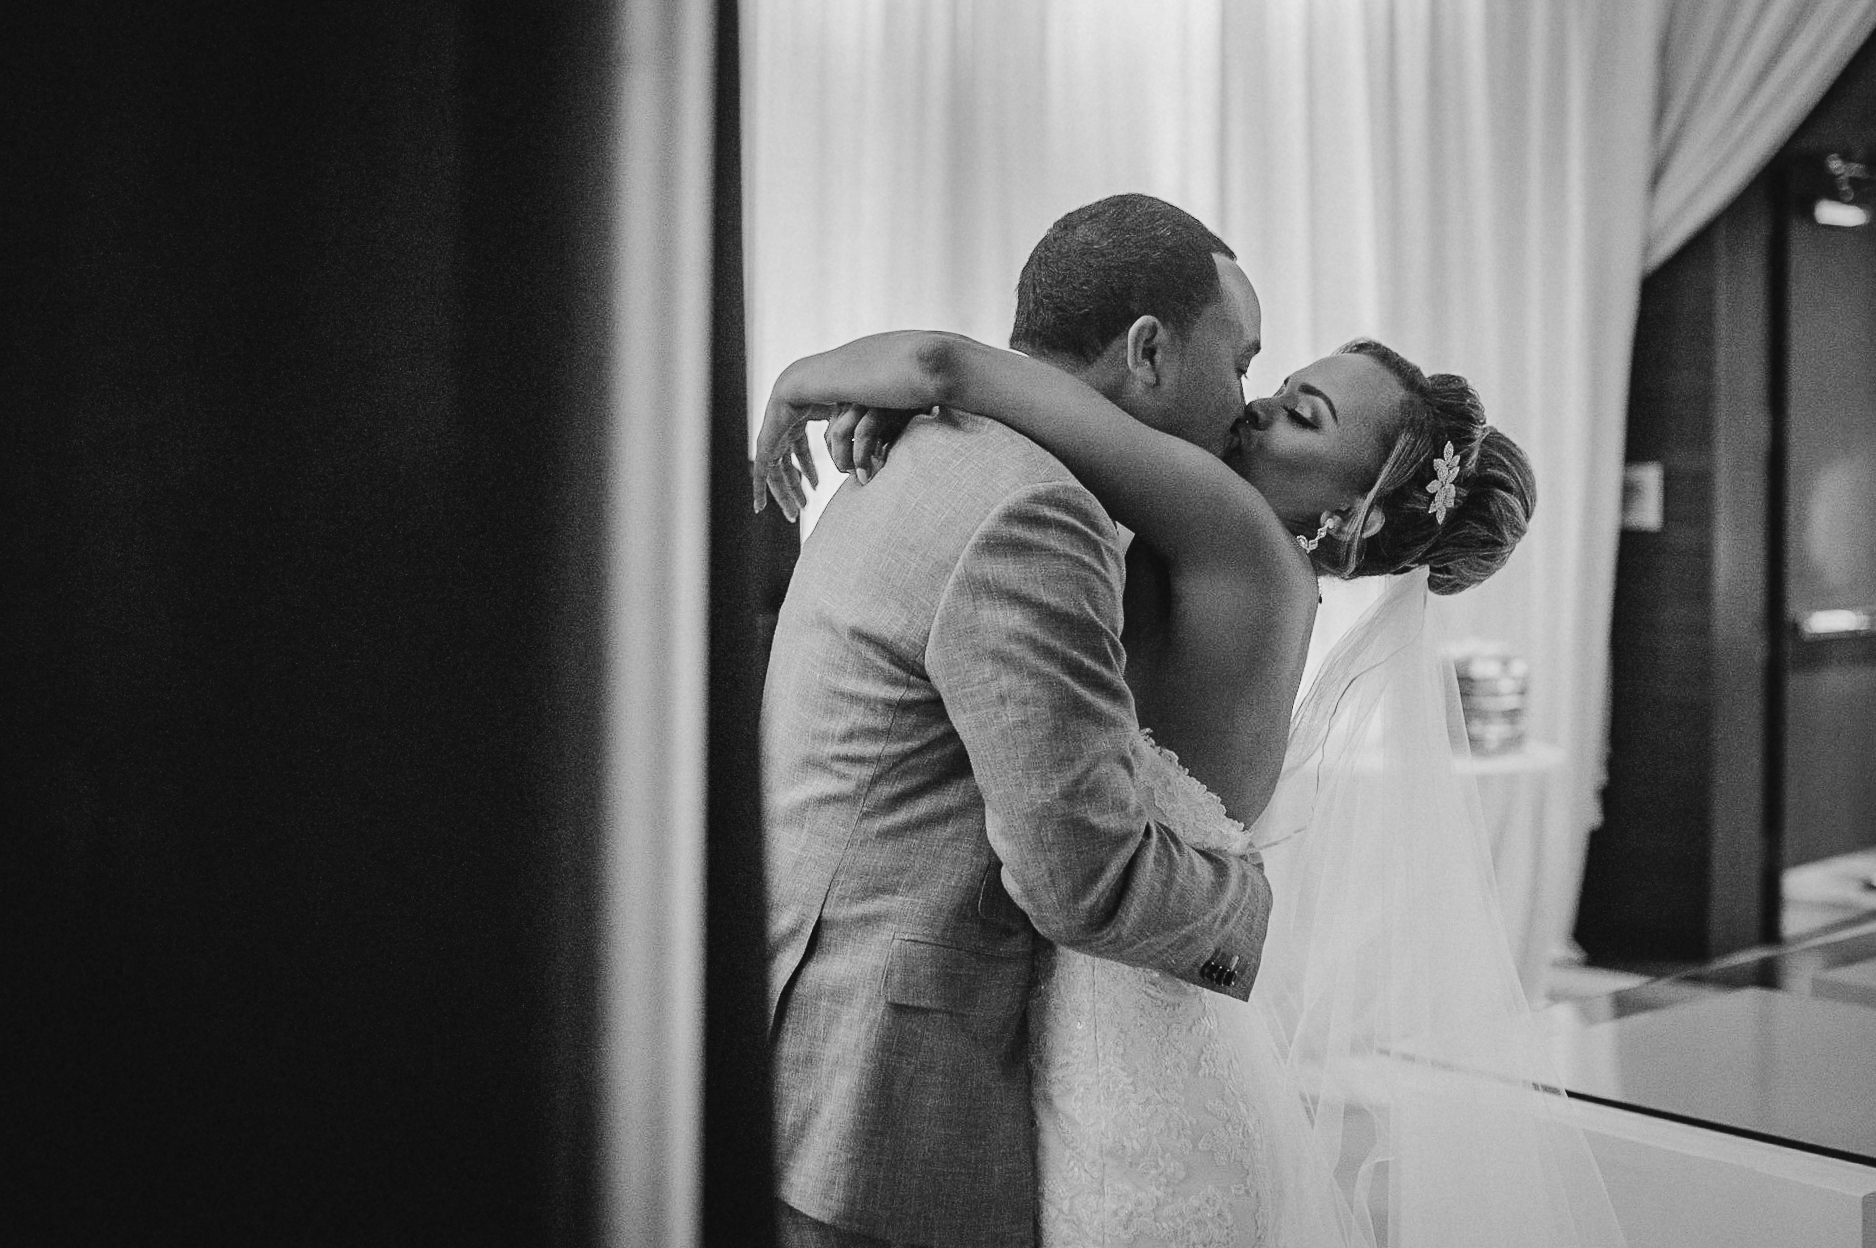 bride and groom kissing after getting married at The Park Hyatt Hotel in Washington DC